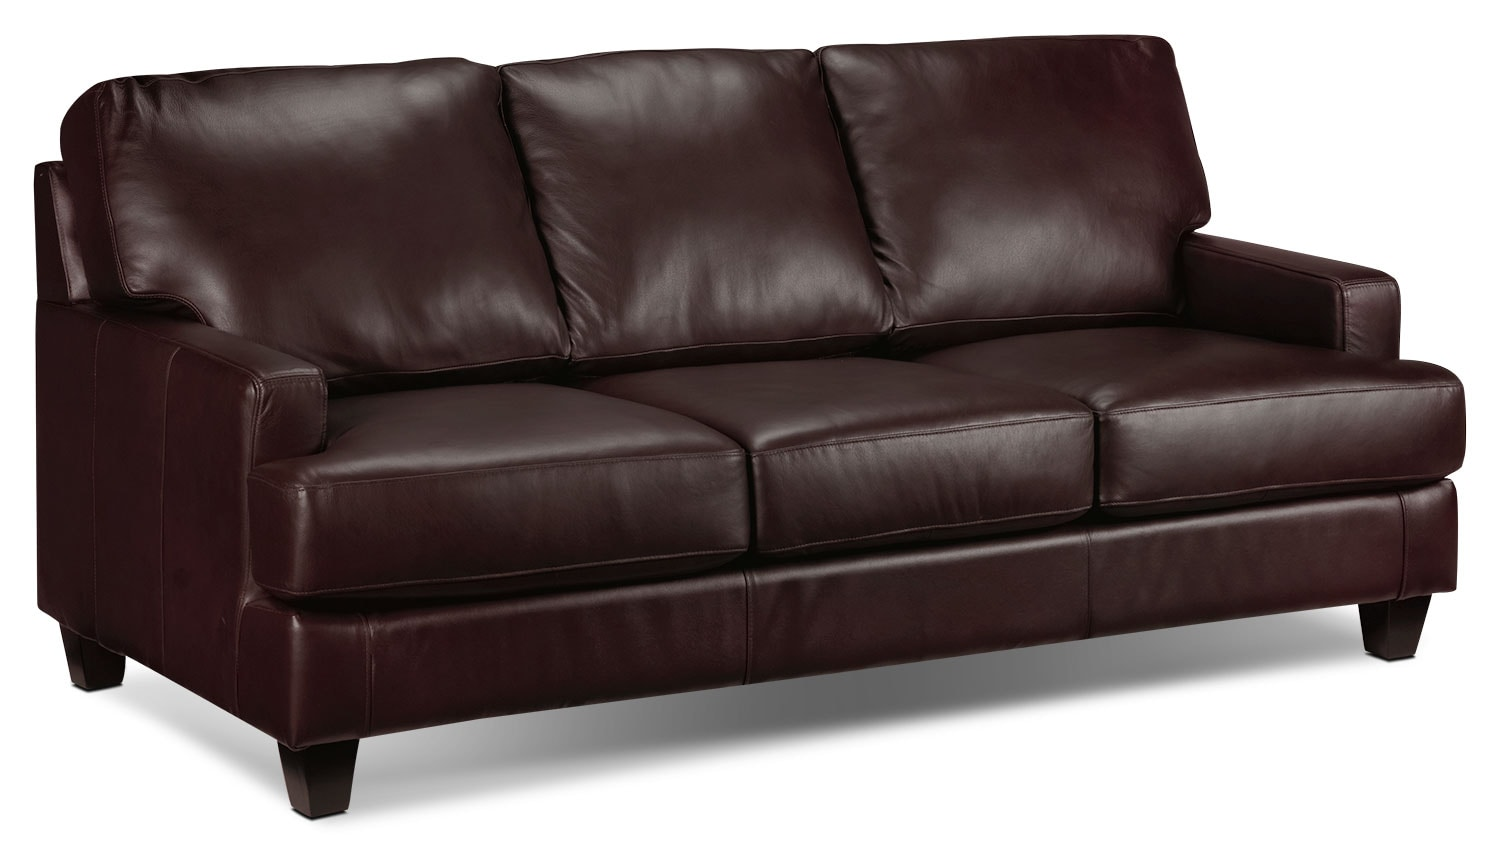 Living Room Furniture - Janie Sofa - Espresso